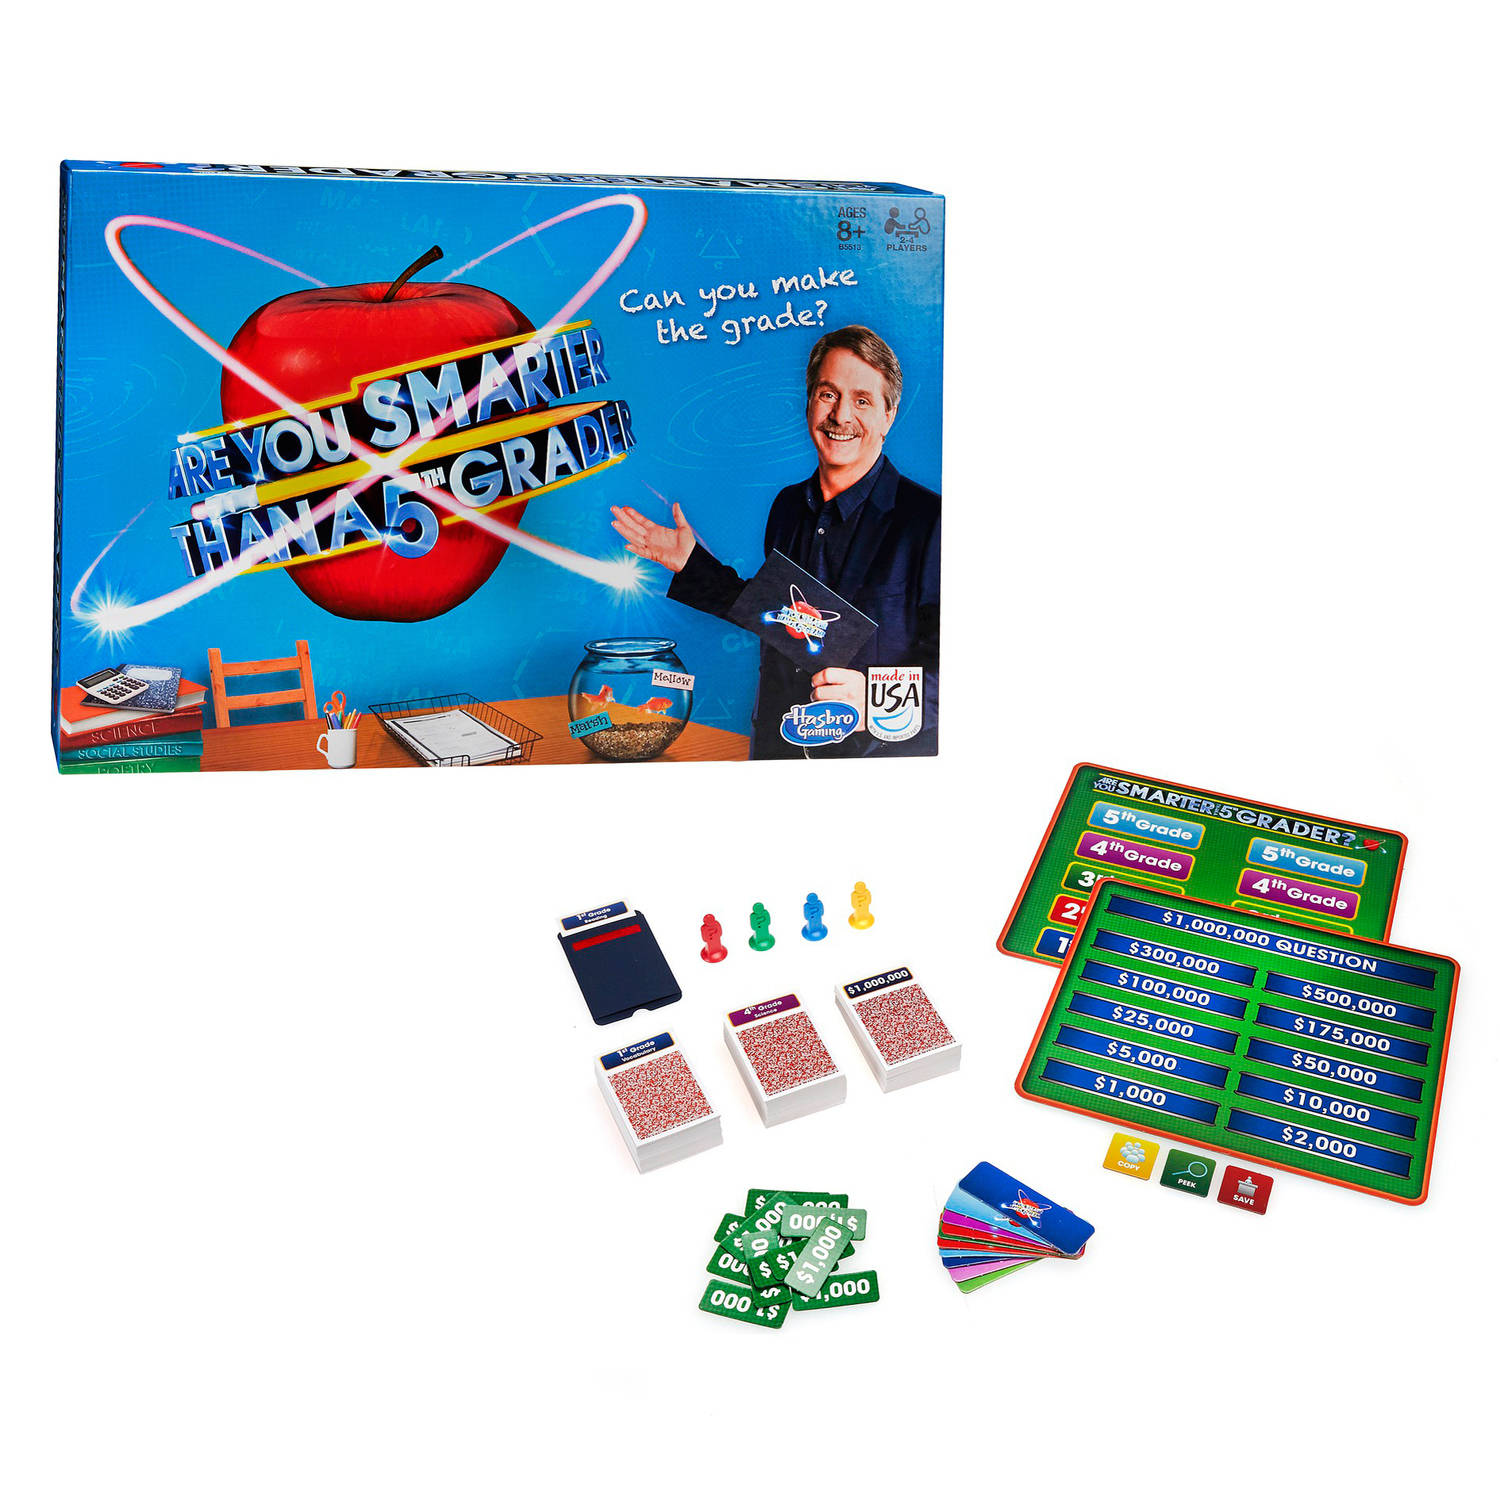 Are You Smarter Than a 5th Grader? | Board Game ...